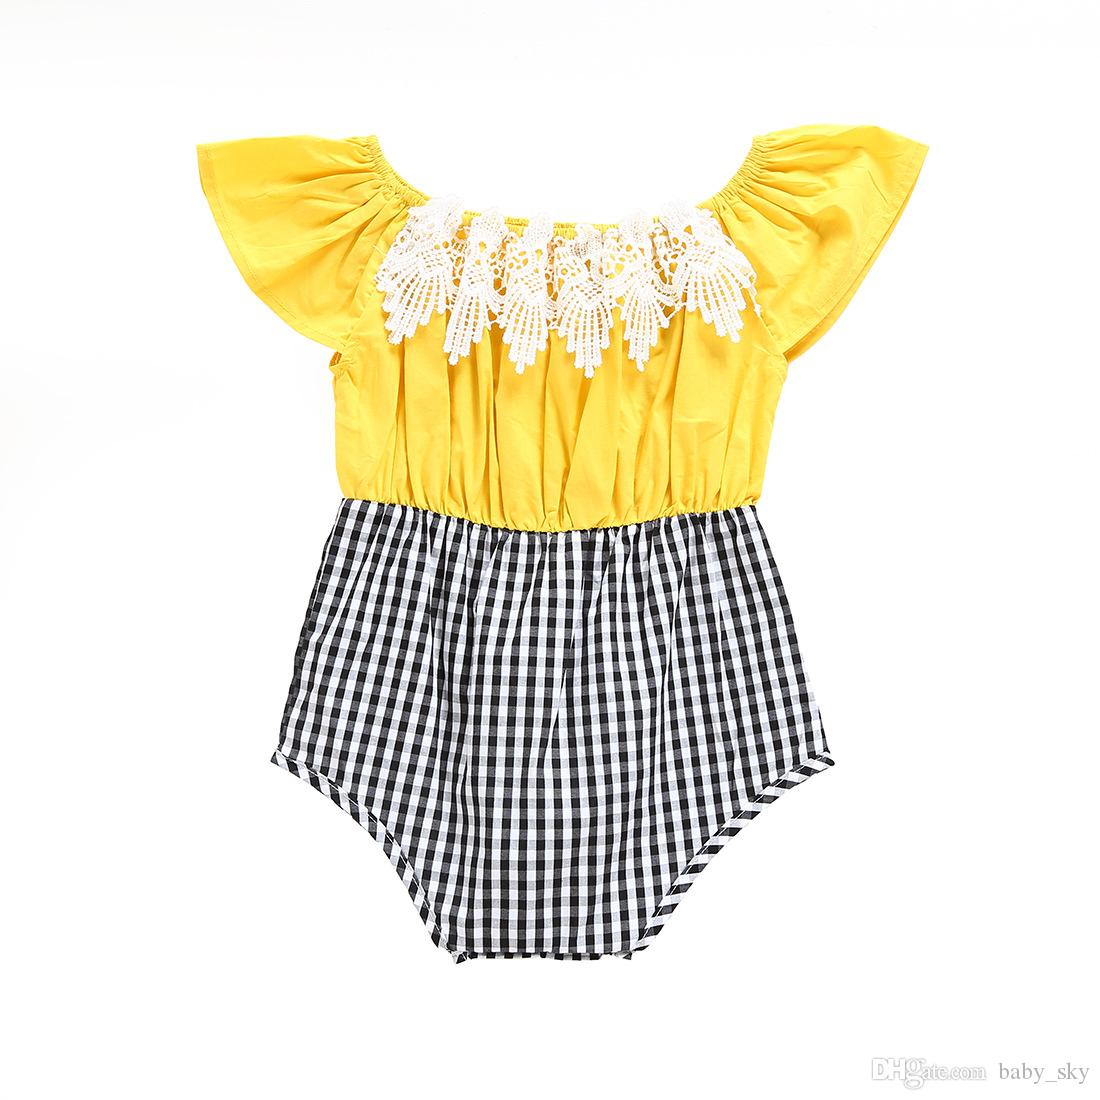 ad8098ed356d Online Cheap Baby Romper Summer Vintage Lace Plaid Patchwork Jumpsuit For Girls  Toddler Clothing Kids Fashion Children Clothes By Baby sky